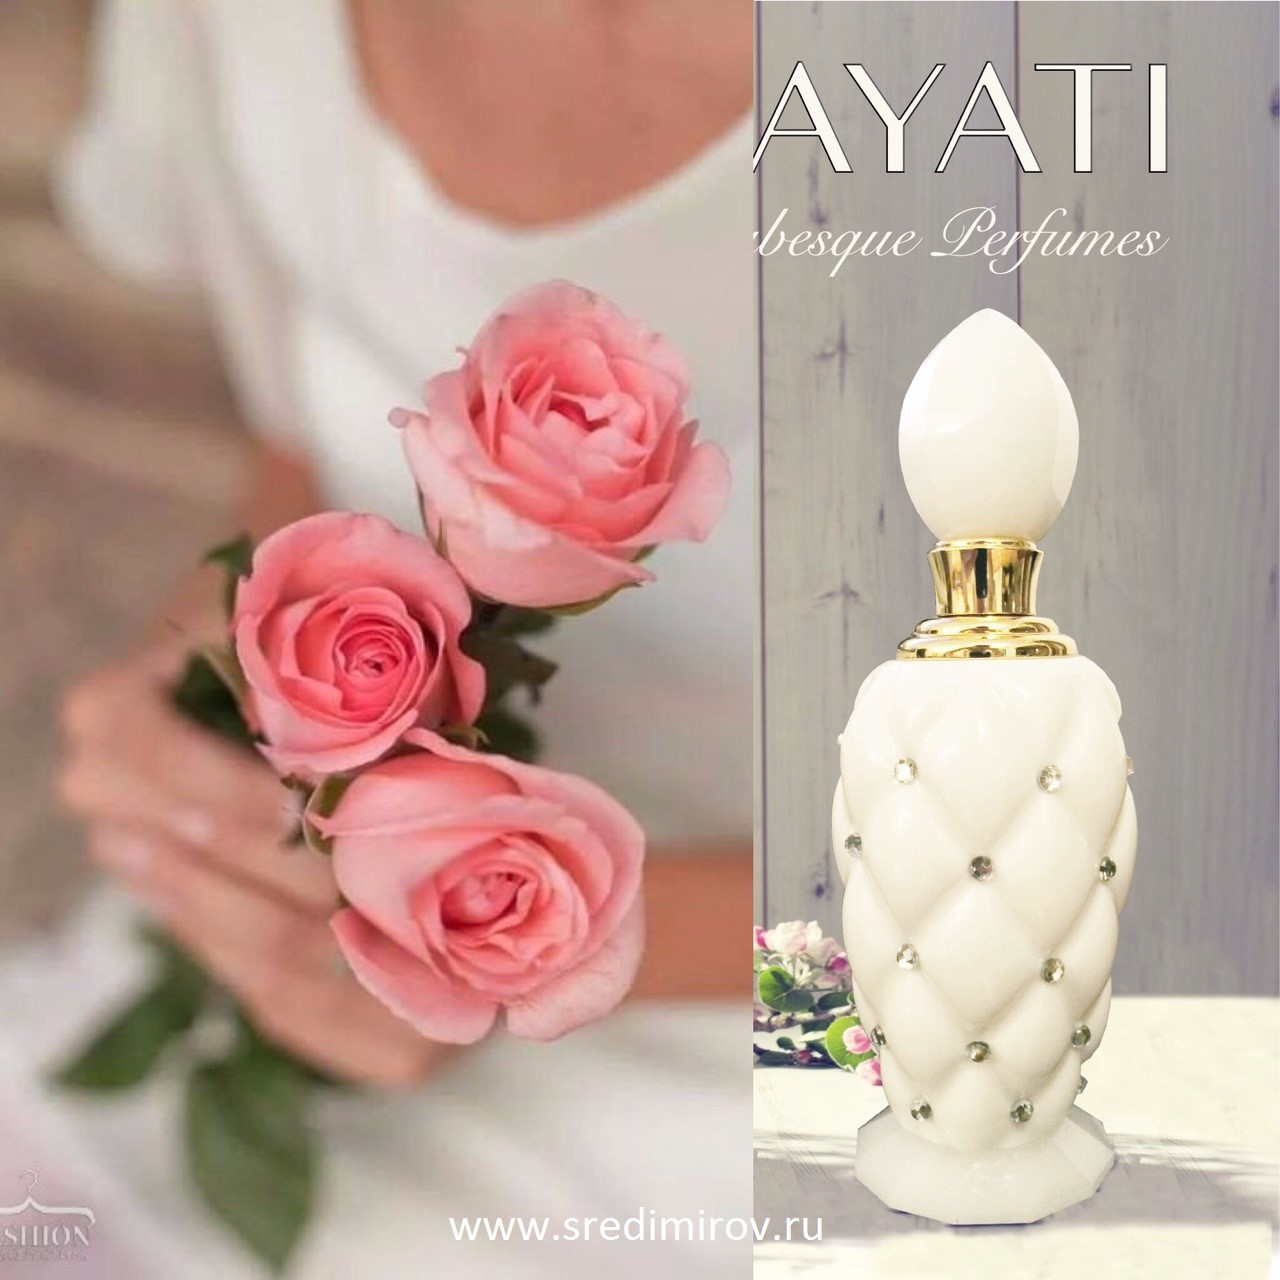 MUSK HAYATI, 12 мл, Arabesque Perfumes